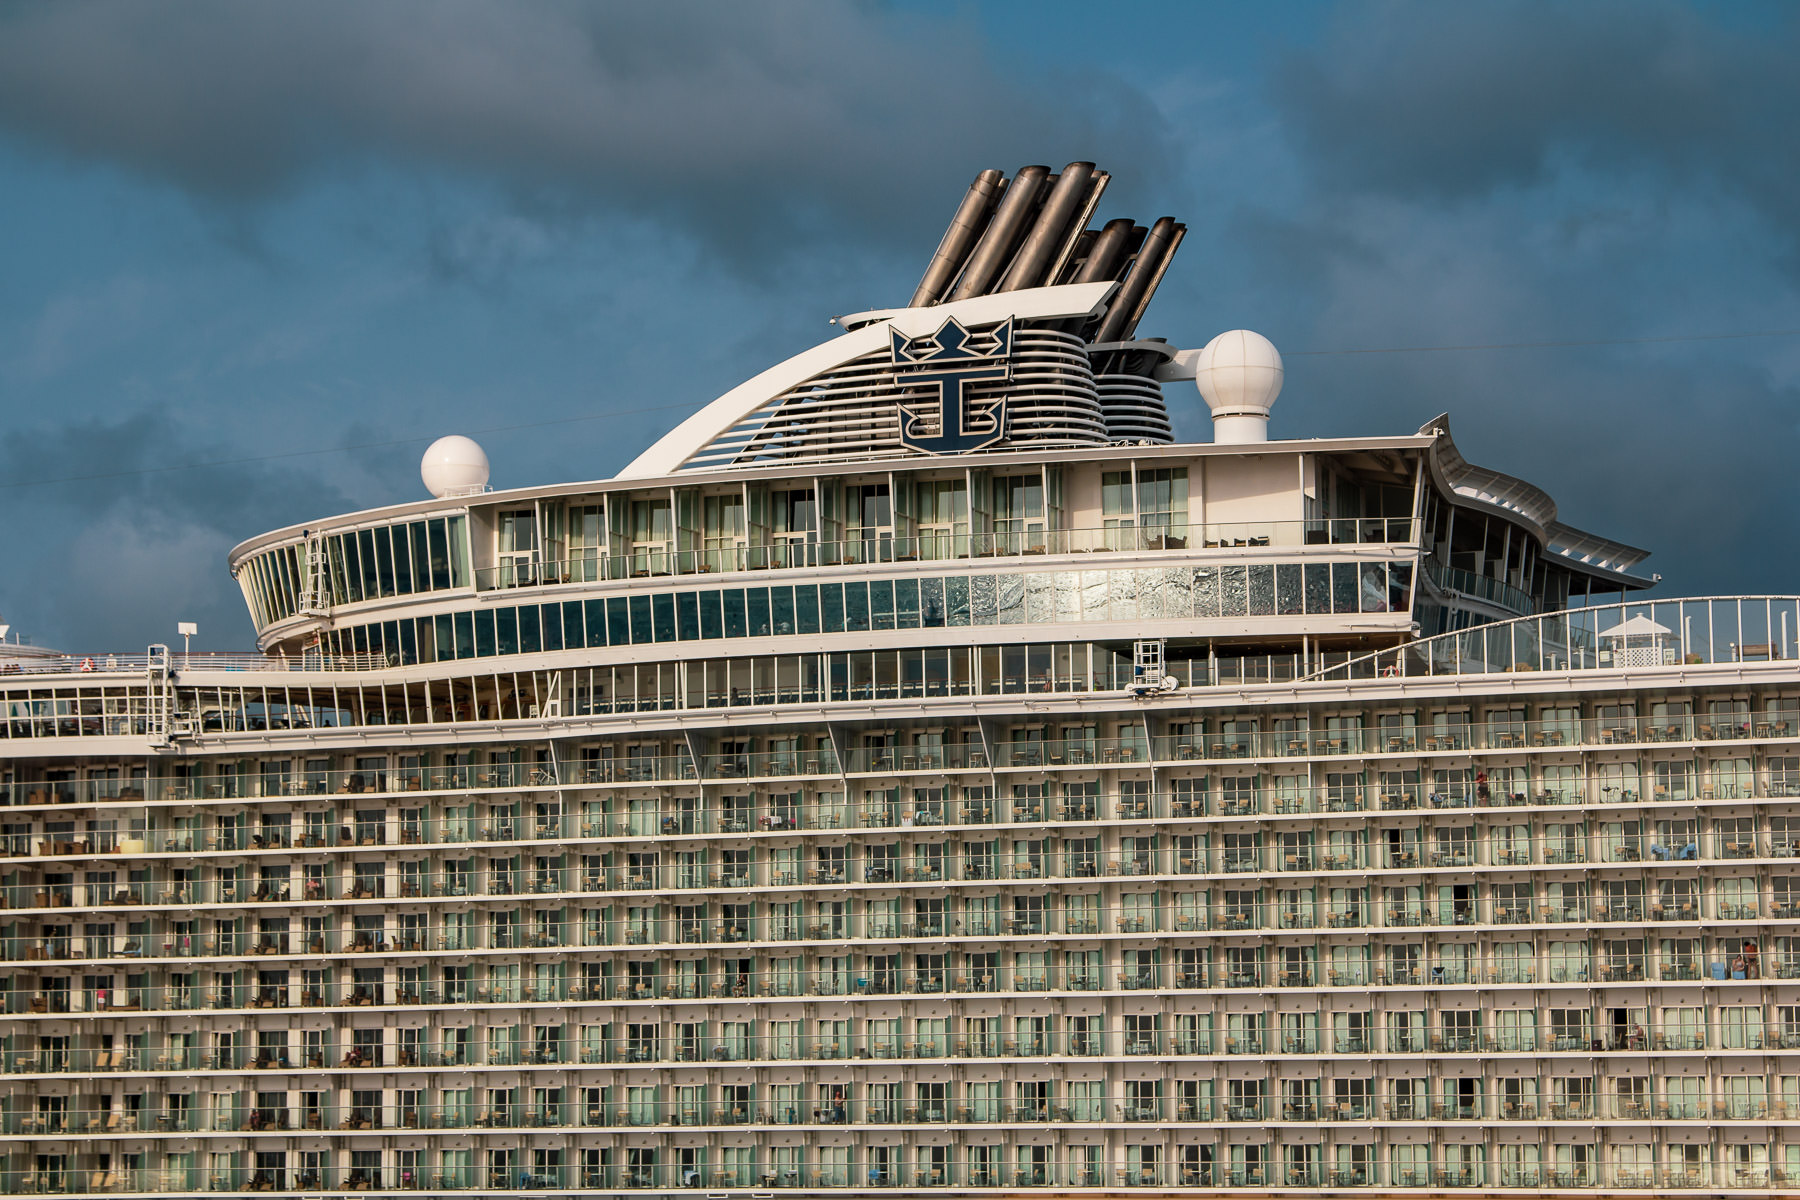 Detail of the cruise ship Allure of the Seas, spotted while docked in Cozumel, Mexico.